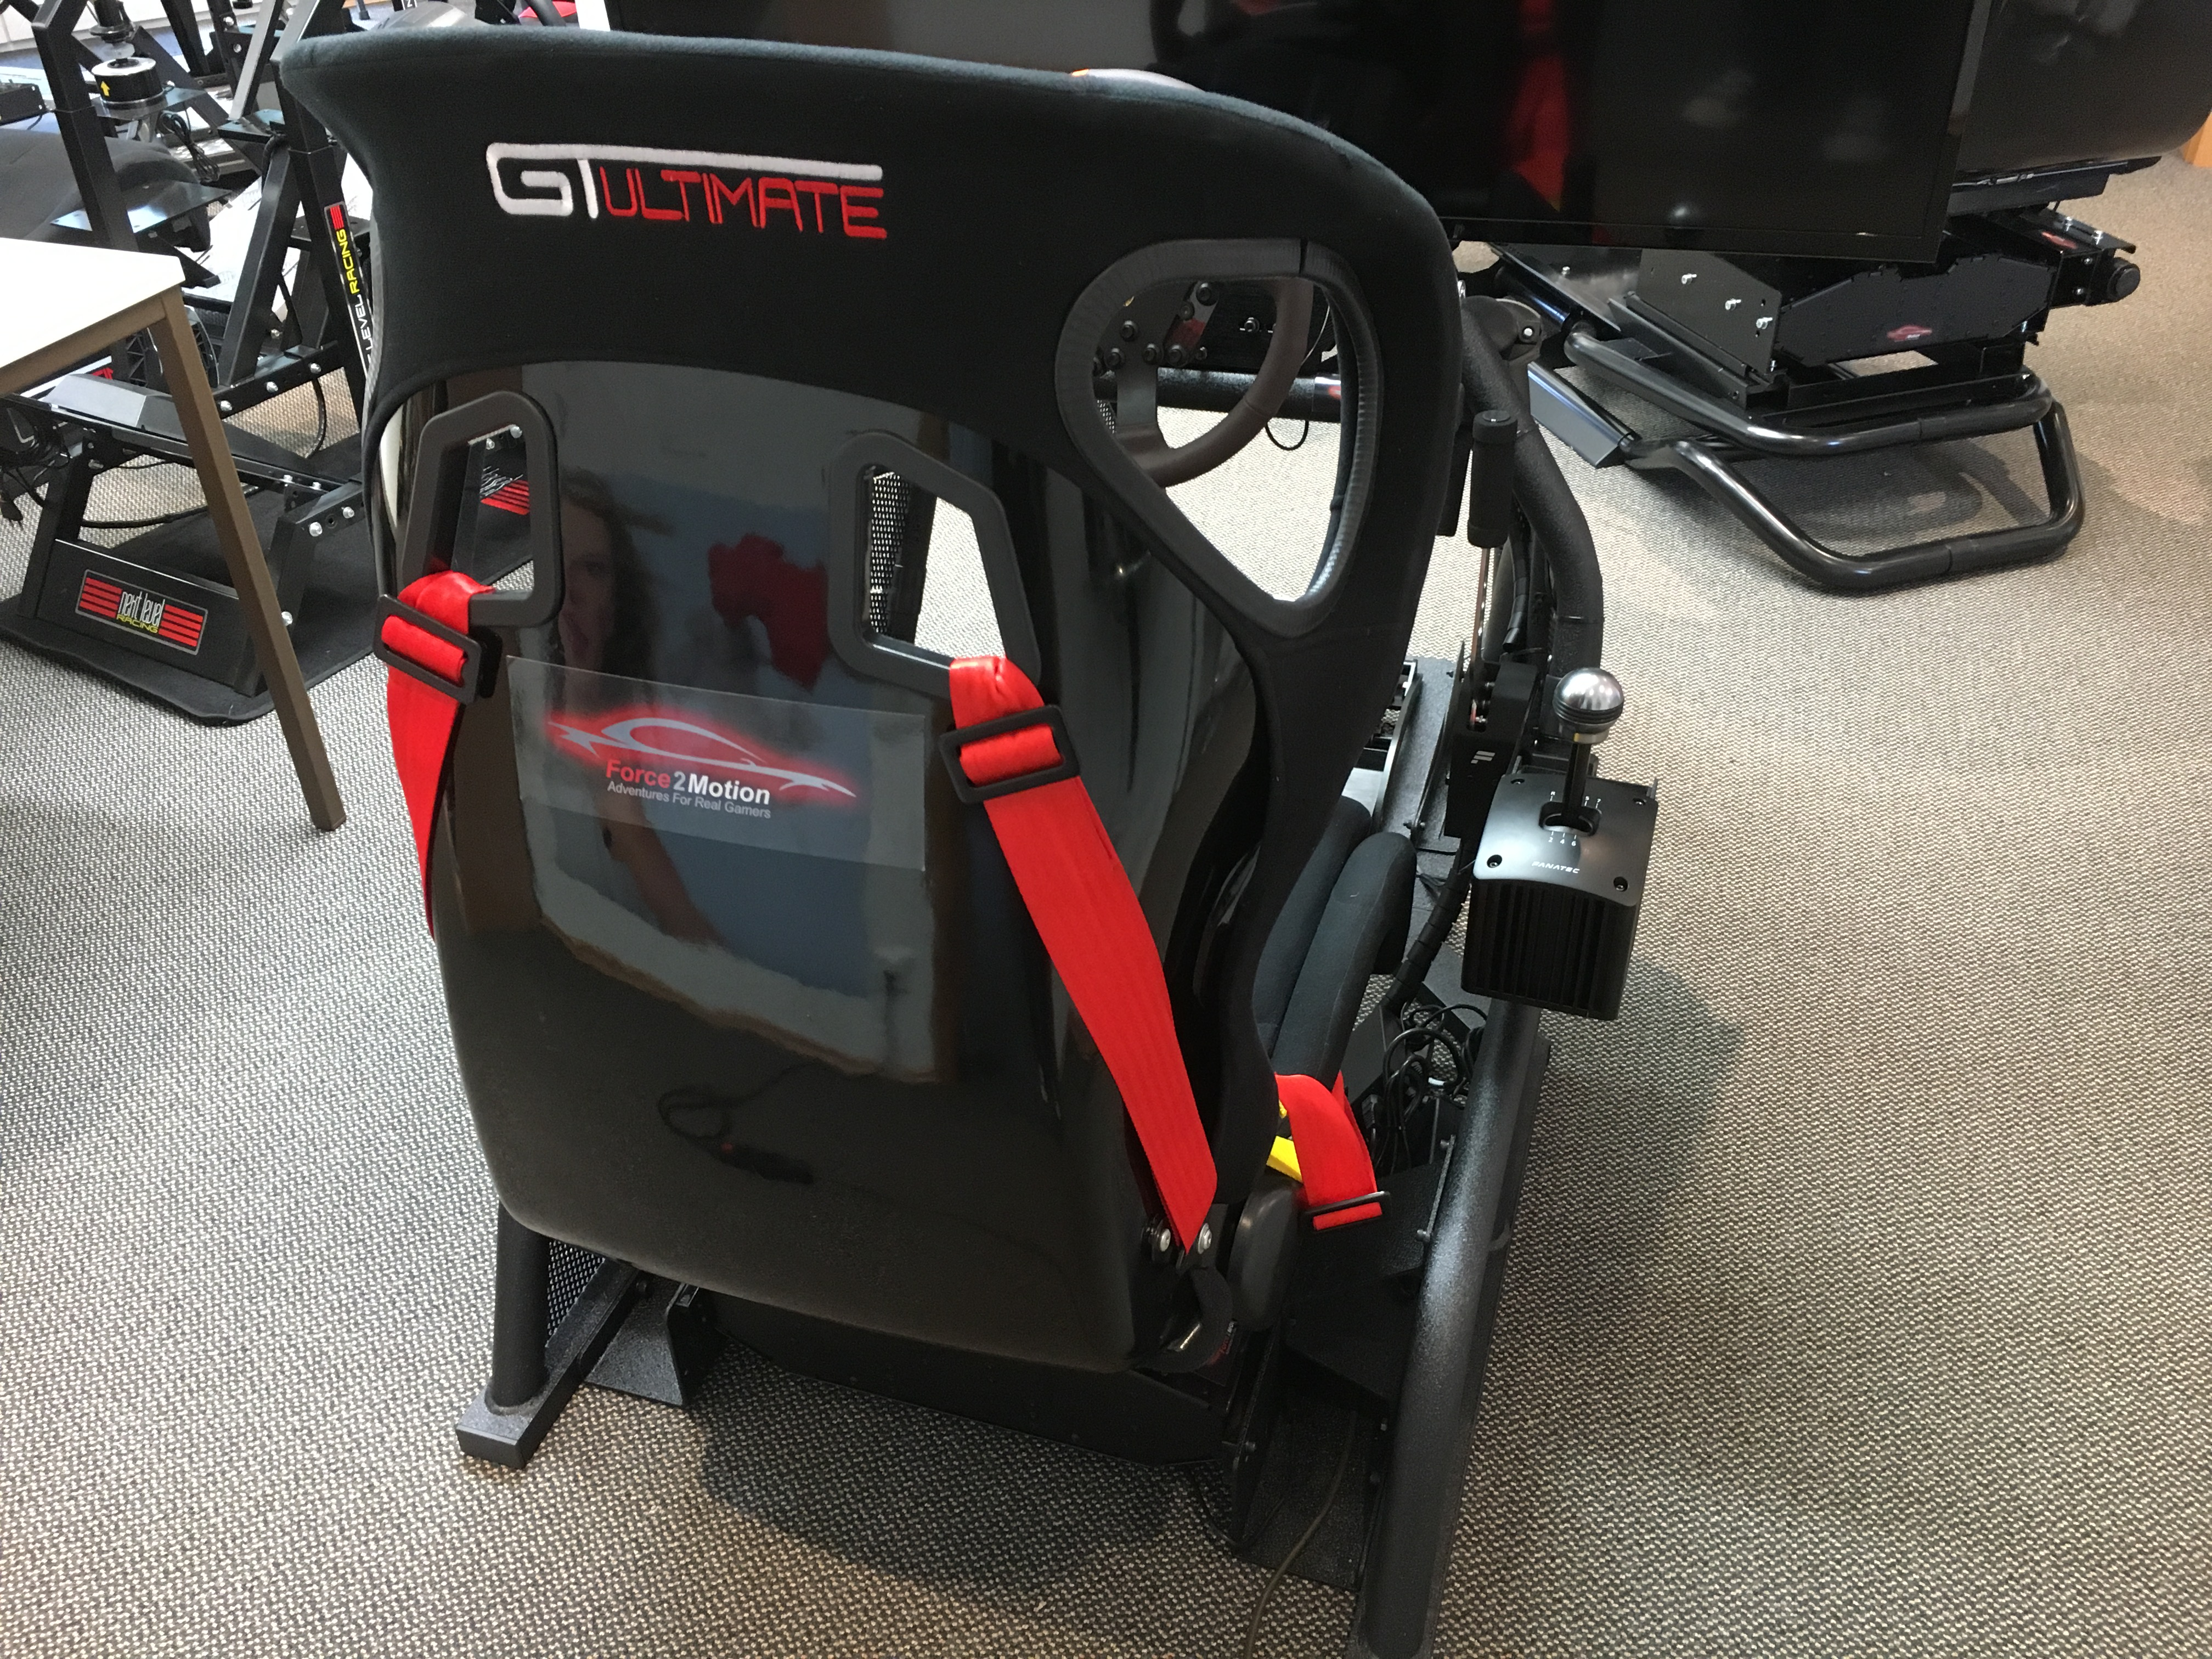 Force2Motion - The platform for Sim-Racing and Flight-Sims